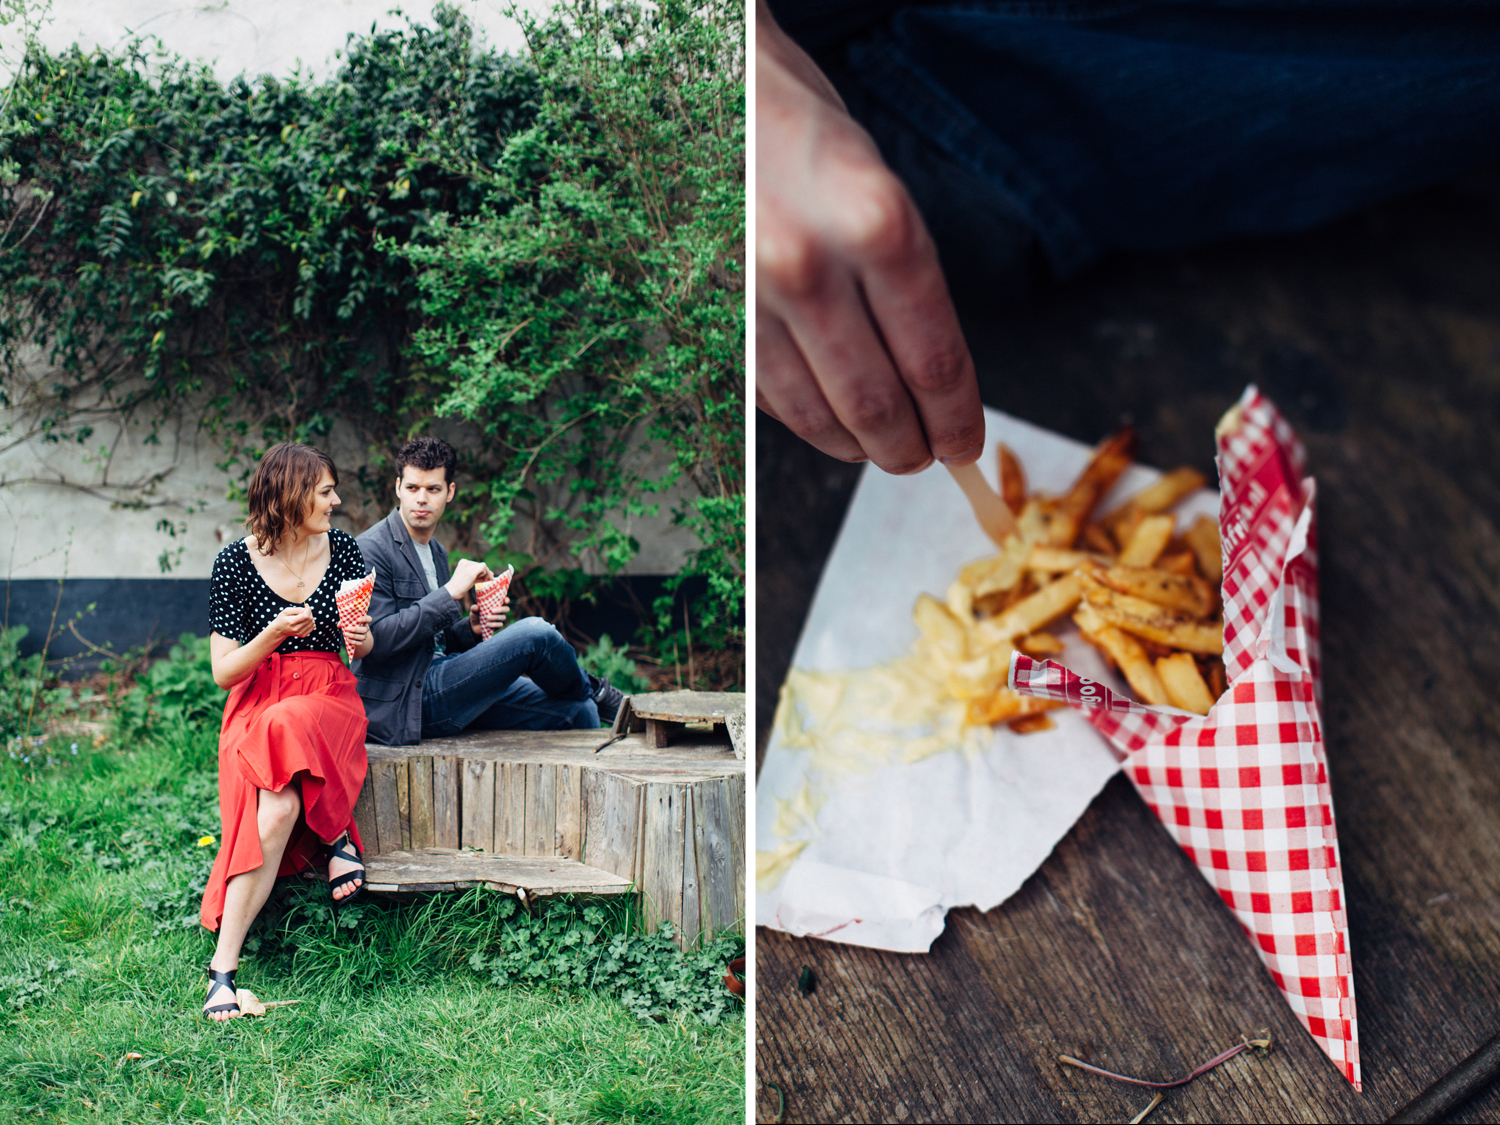 loveshoot in Amersfoort - Anne+Stefan - photo by OAK&FIR - Inspire Styling blog